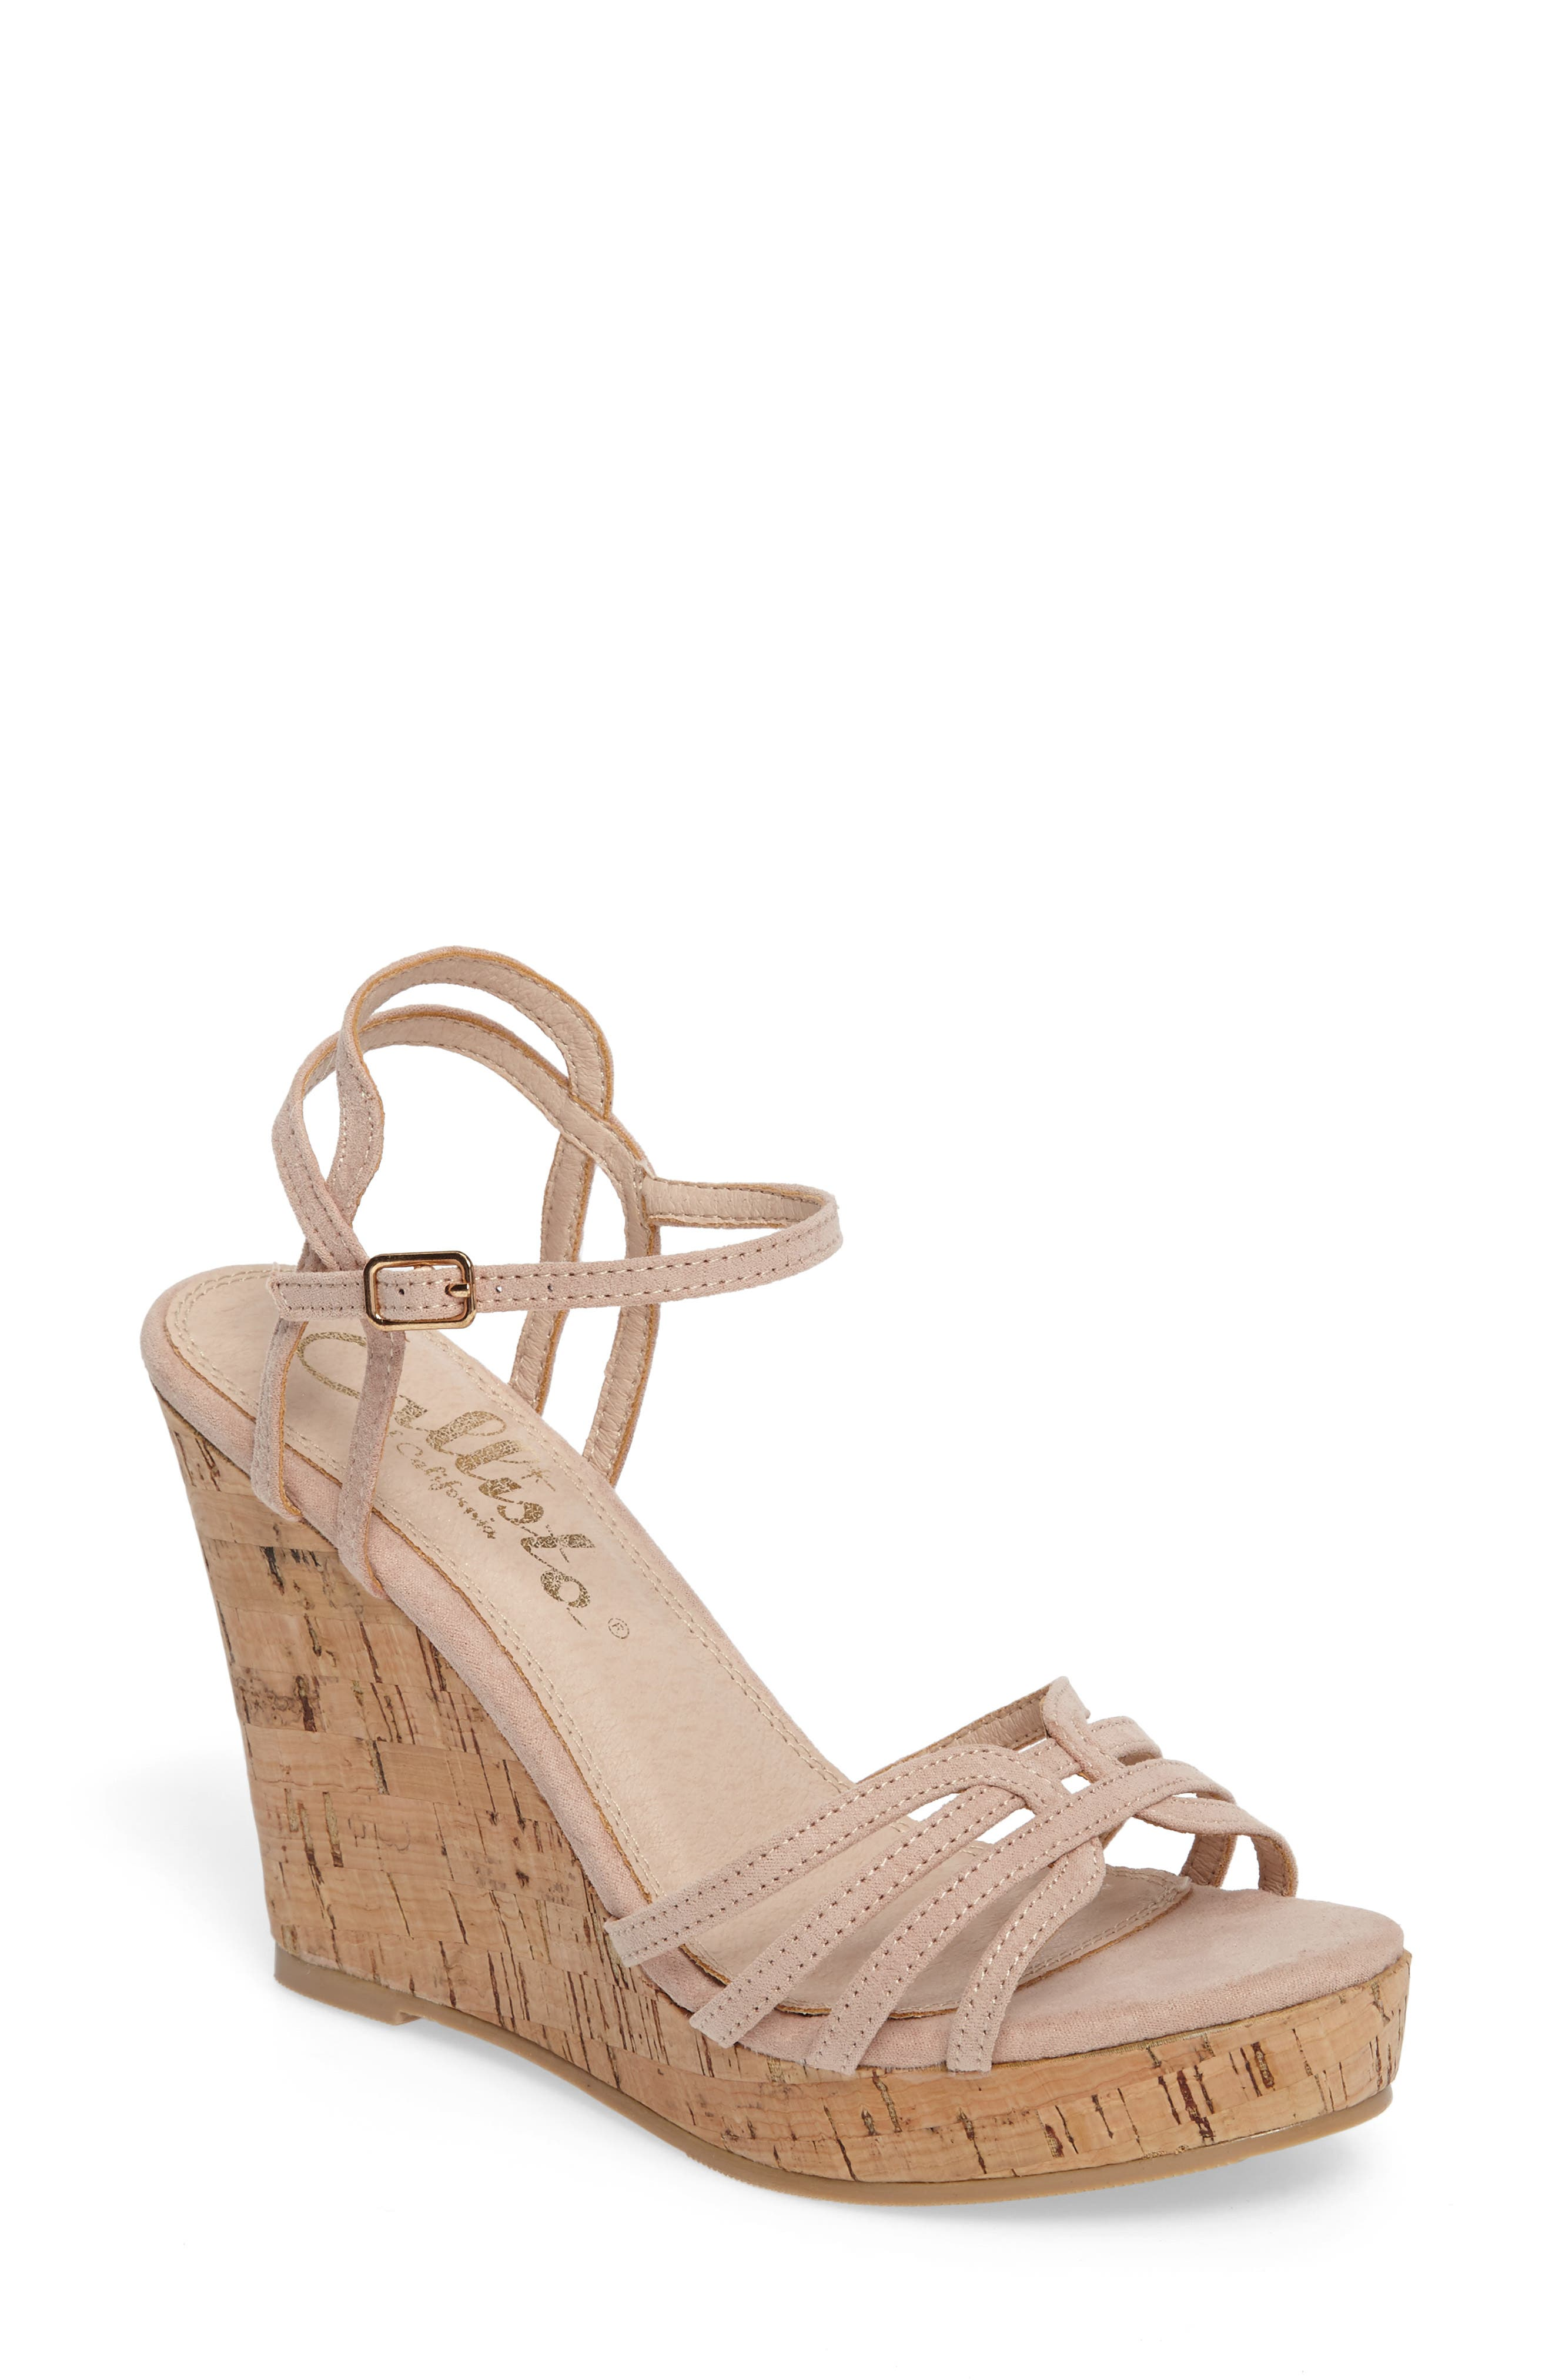 Alternate Image 1 Selected - Callisto Oasis Platform Wedge Sandal (Women)